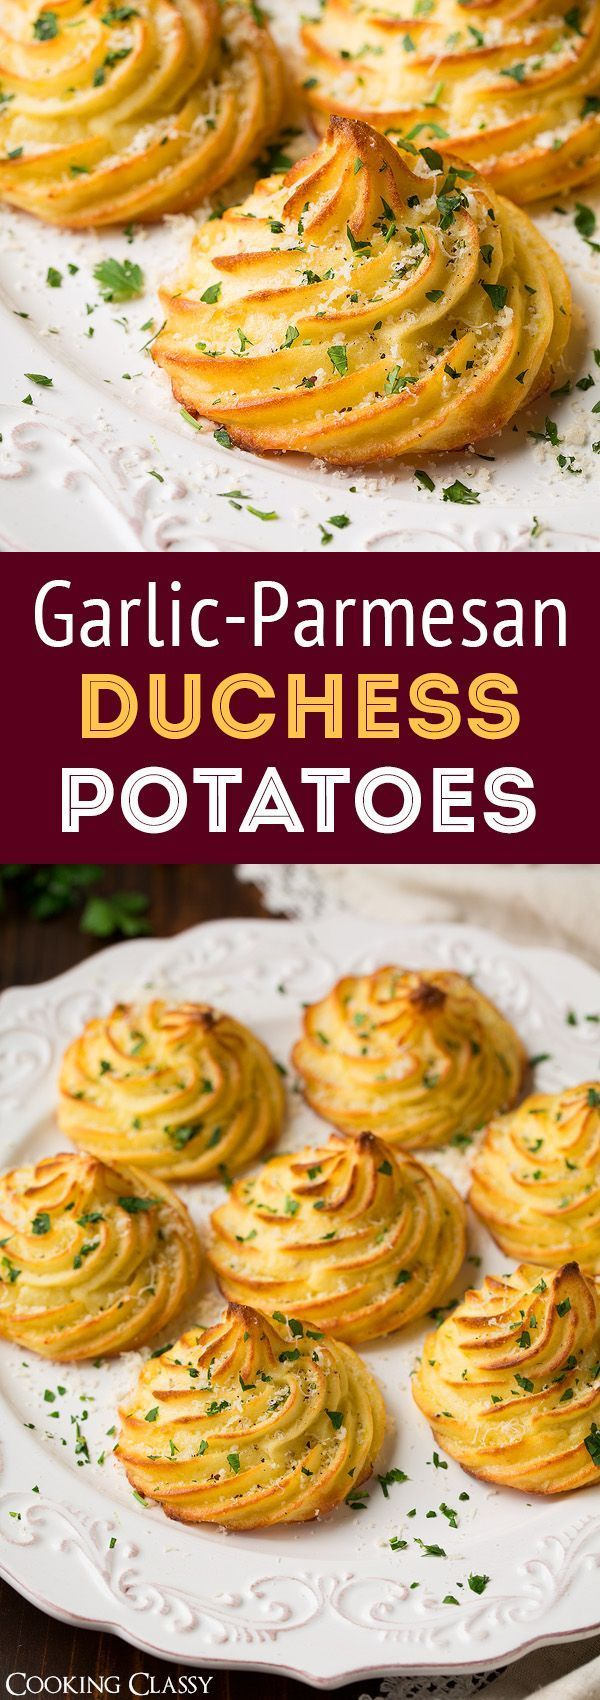 nice Garlic Parmesan Duchess Potatoes - you NEED these in your life! Little buttery c...by http://dezdemooncooking4u.gdn